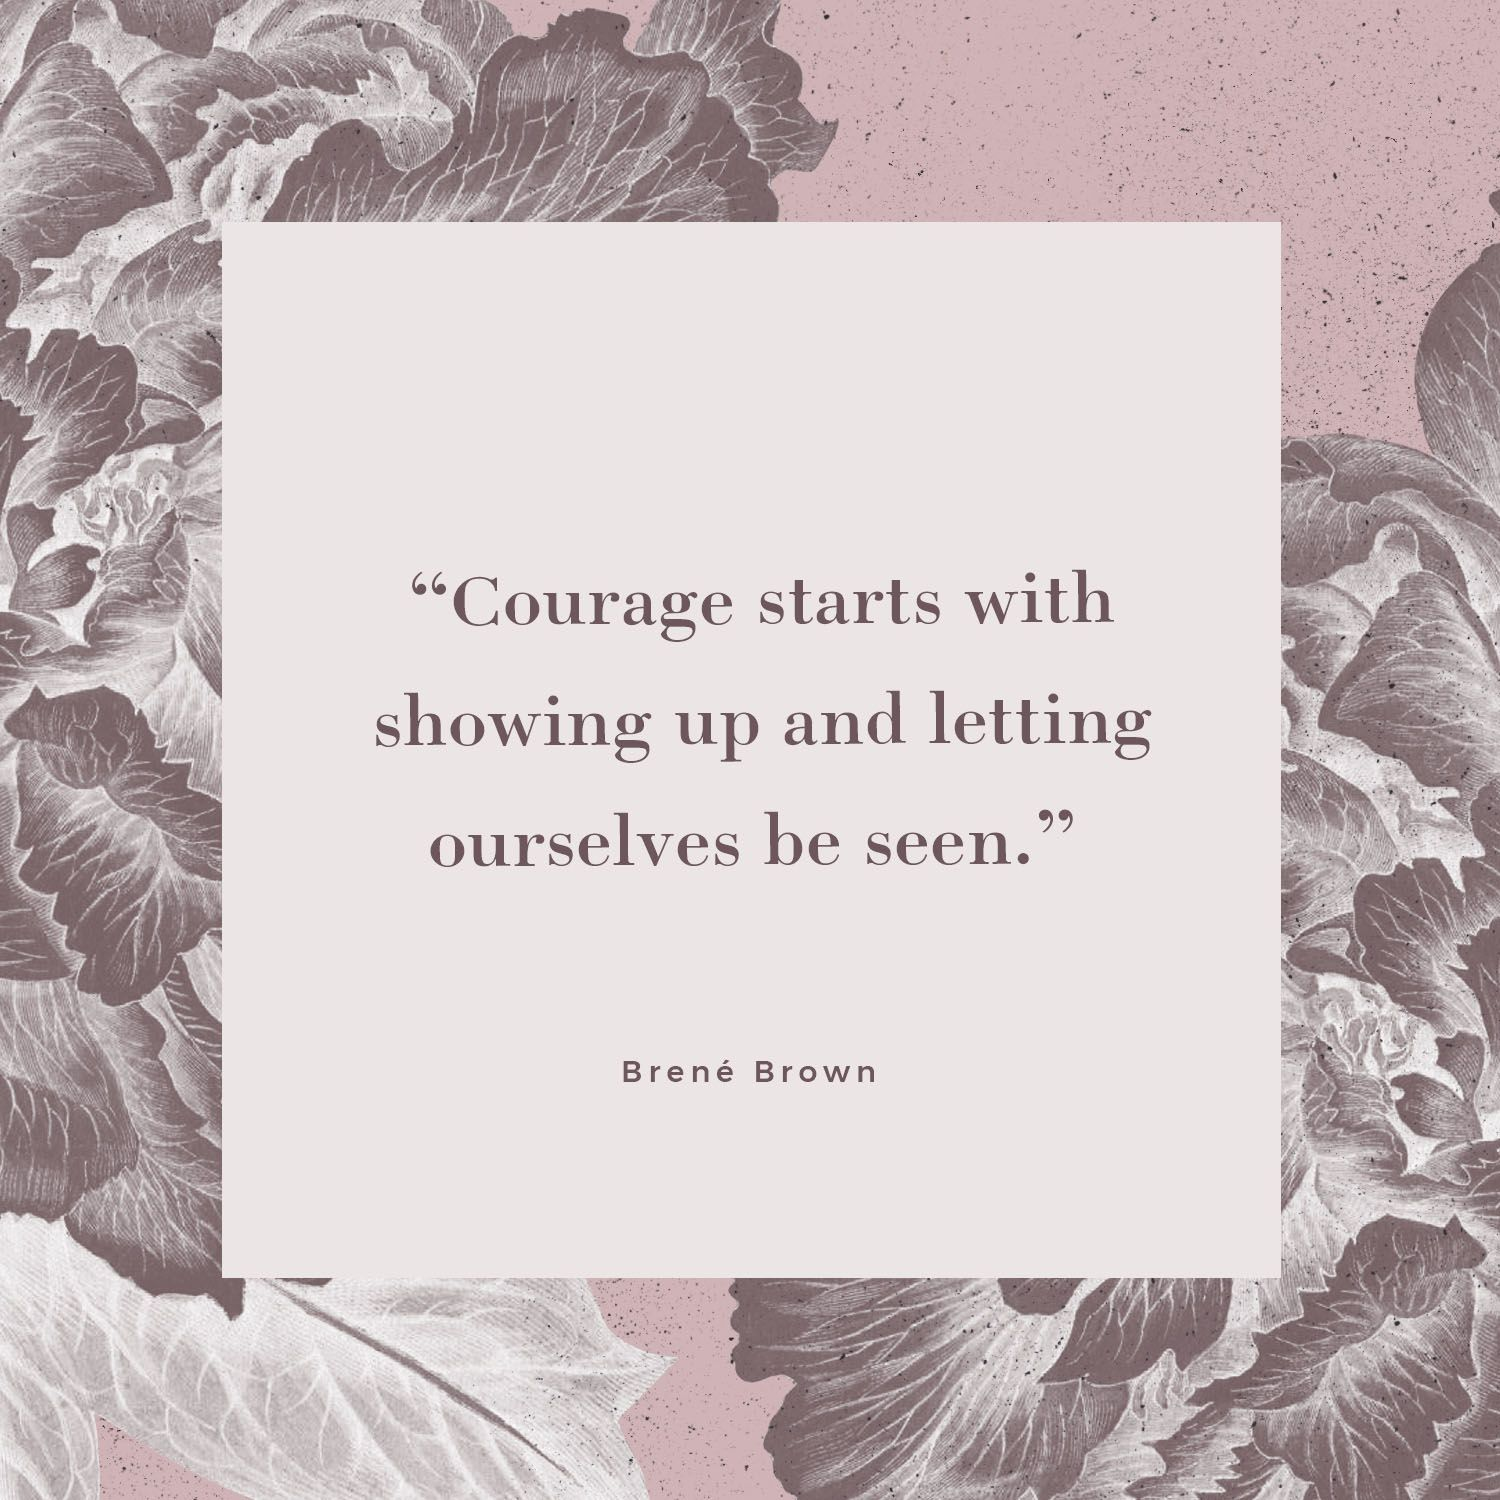 Indeed 👍👍 The beginning of courage is showing up